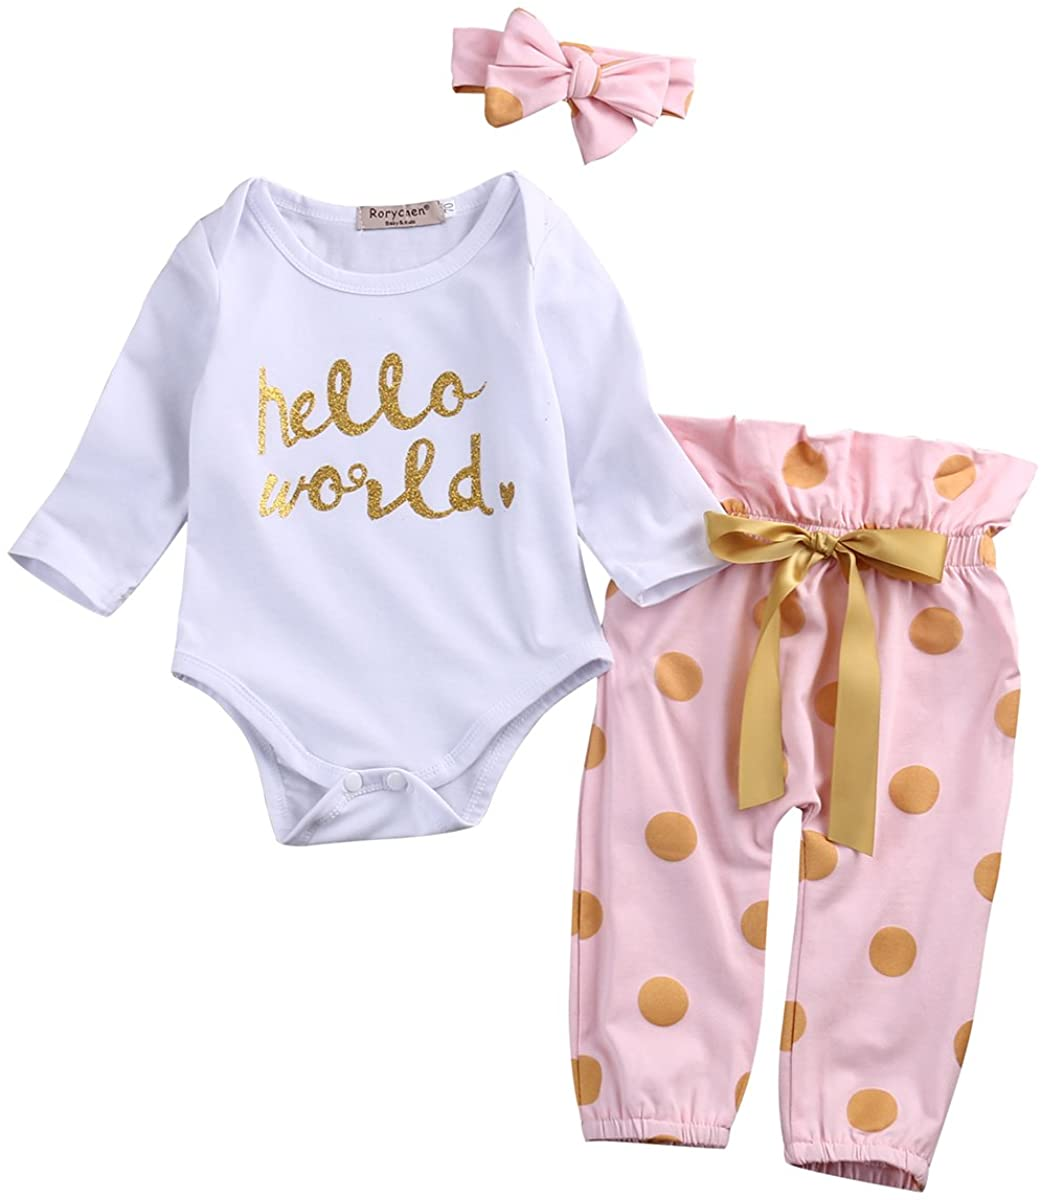 3Pcs Infant Baby Girls Romper Tops Pants Newborn Cotton Clothes Outfit Sets Bowknot Headband Hello World Letter Print